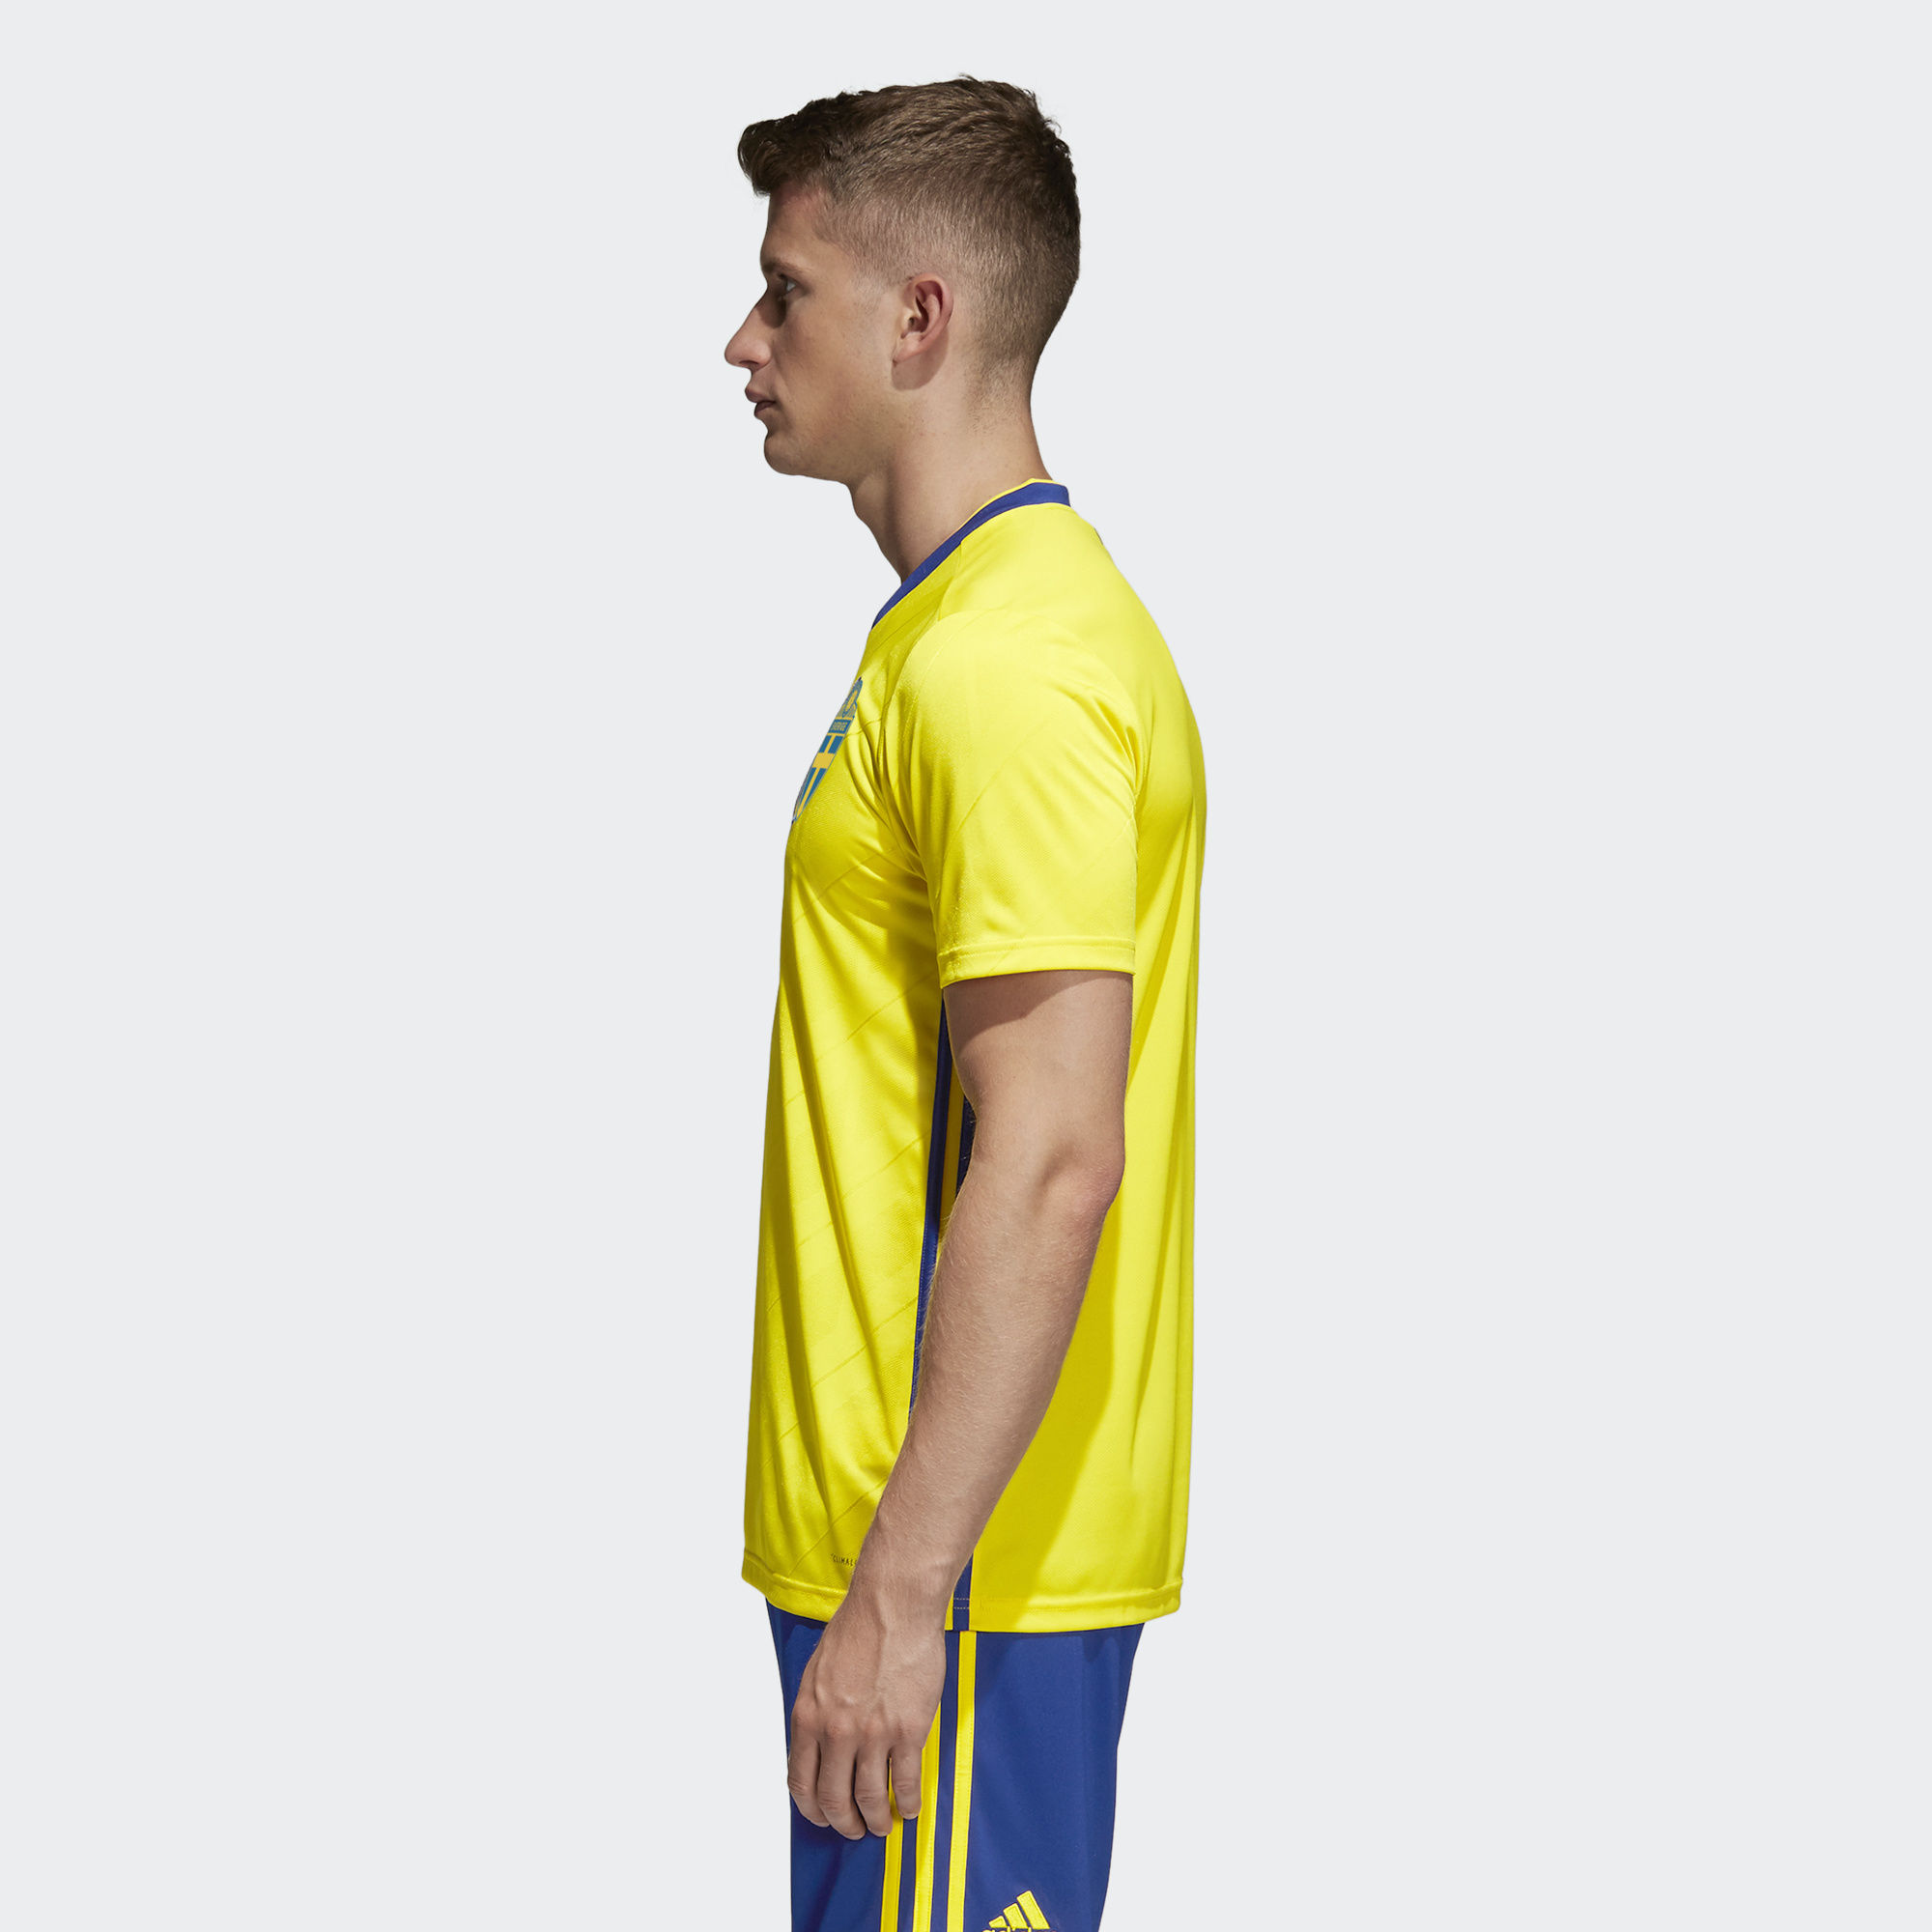 10227e655be ... Sweden 2018 World Cup Adidas Away Kit · Click to enlarge image  sweden_2018_adidas_home_kit_a.jpg; Click to enlarge image  sweden_2018_adidas_home_kit_b. ...